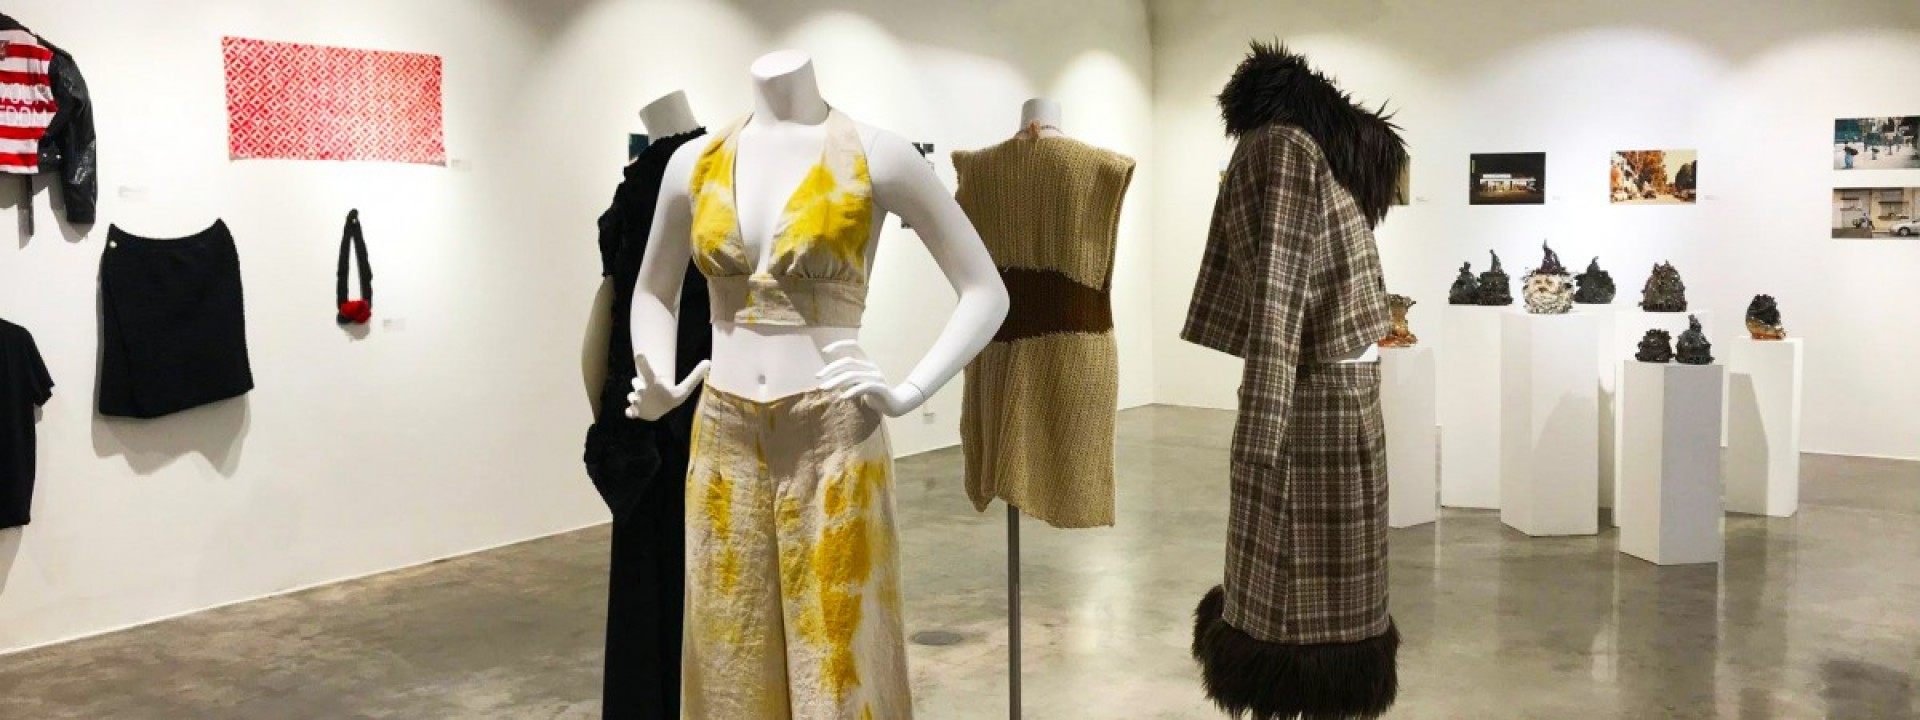 Mannequins in stylish clothing on display in the Ronald H. Silverman Fine Arts Gallery